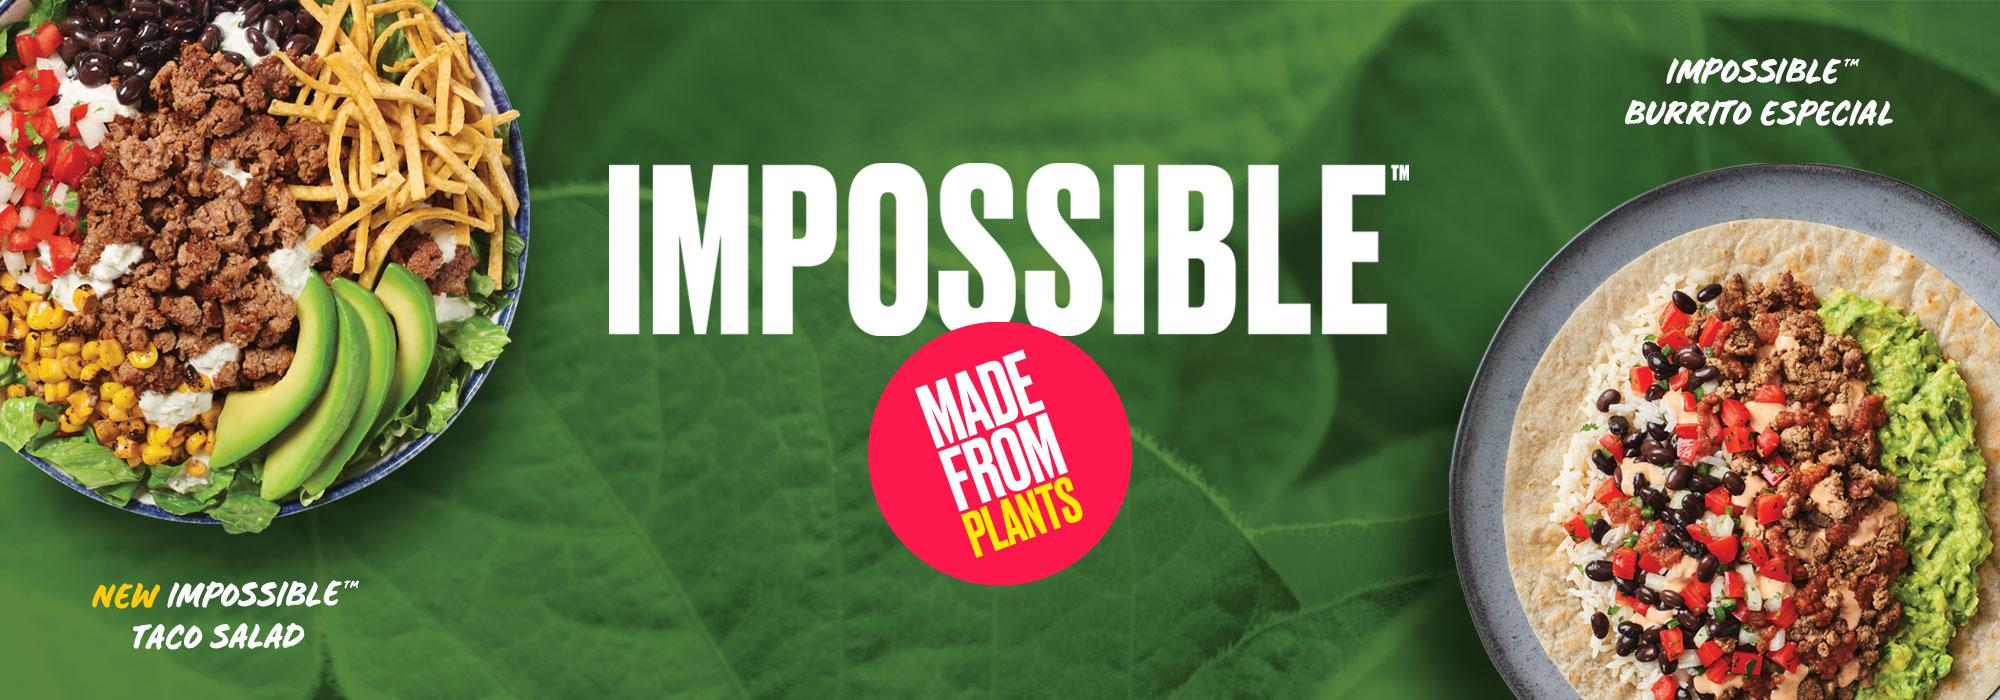 Impossible Made from Plants